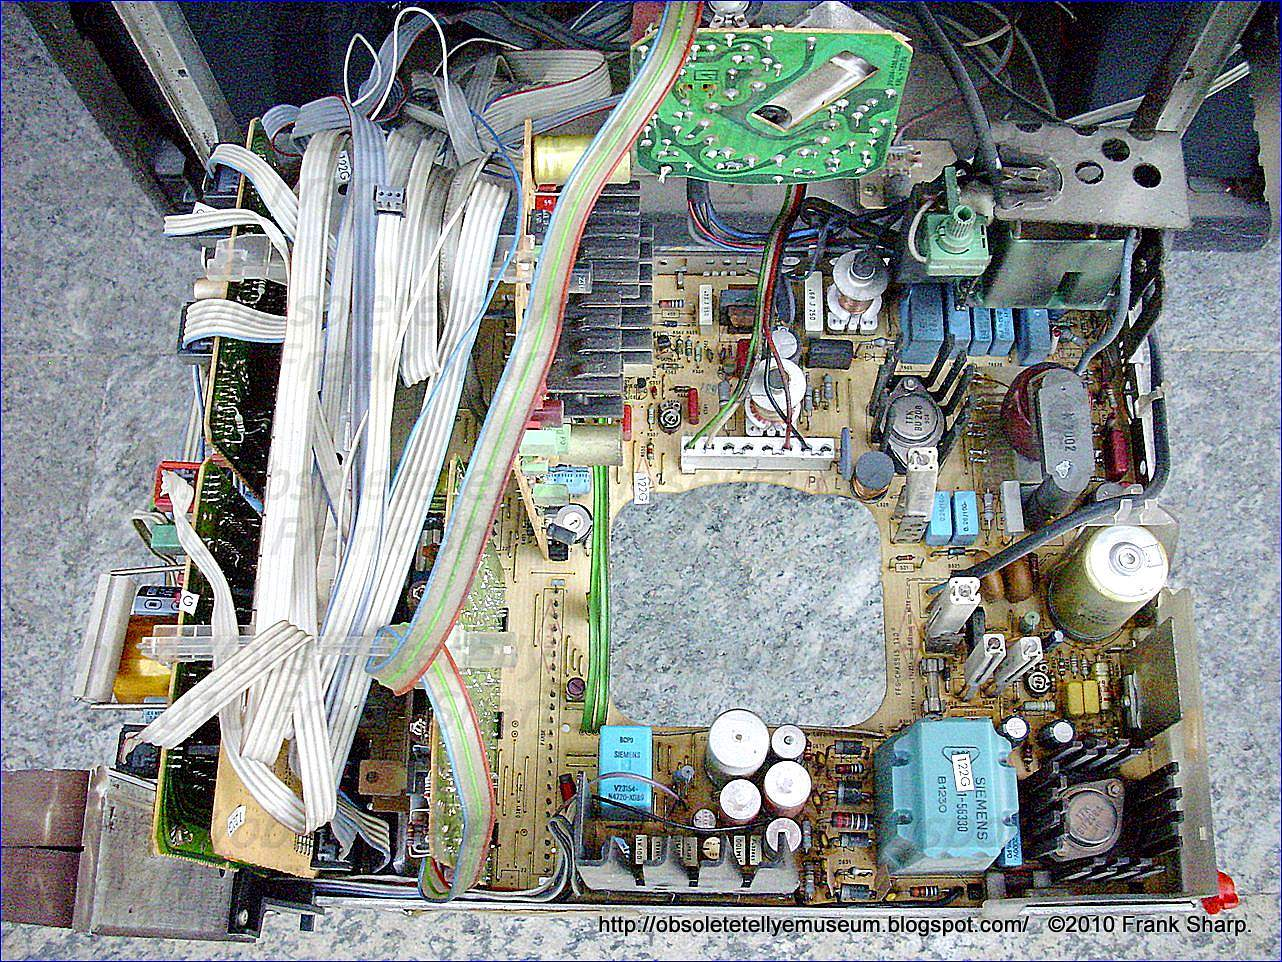 Obsolete Technology Tellye Grundig Super Color Monolith B8690 96 Besides 50 Gfci Breaker Wiring Diagram Furthermore Hot Tub 220 The Chassis Cuc720 Was A Complete New Design Compared With Earlier Types Several Are Differences From Previous In